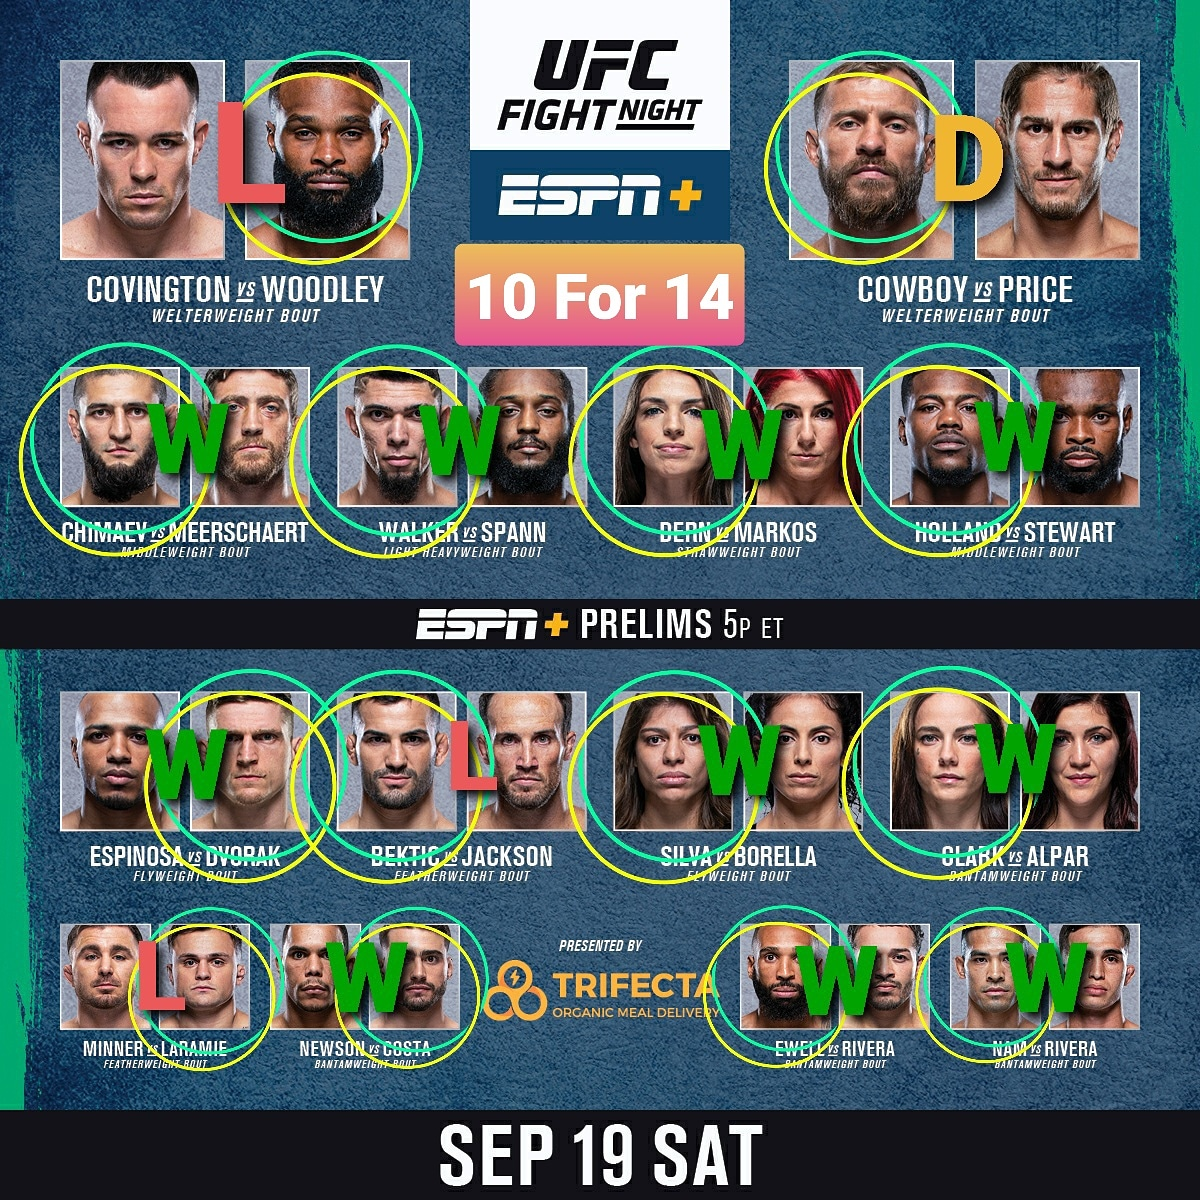 Pickin Results - Pretty damn good night of Pickin with some bad ass fights.   #UFC #UFCVegas11 #UFCApex #UFCFightNight #ESPNPlus #UFConESPN #UFCPicks #UFCPickin #Prep #For #Pick #Bet #Betting #Gamble #BJJ #MMA #Fight #Fighter #Fighting #Family #Coffee https://t.co/TeP0xtX95A